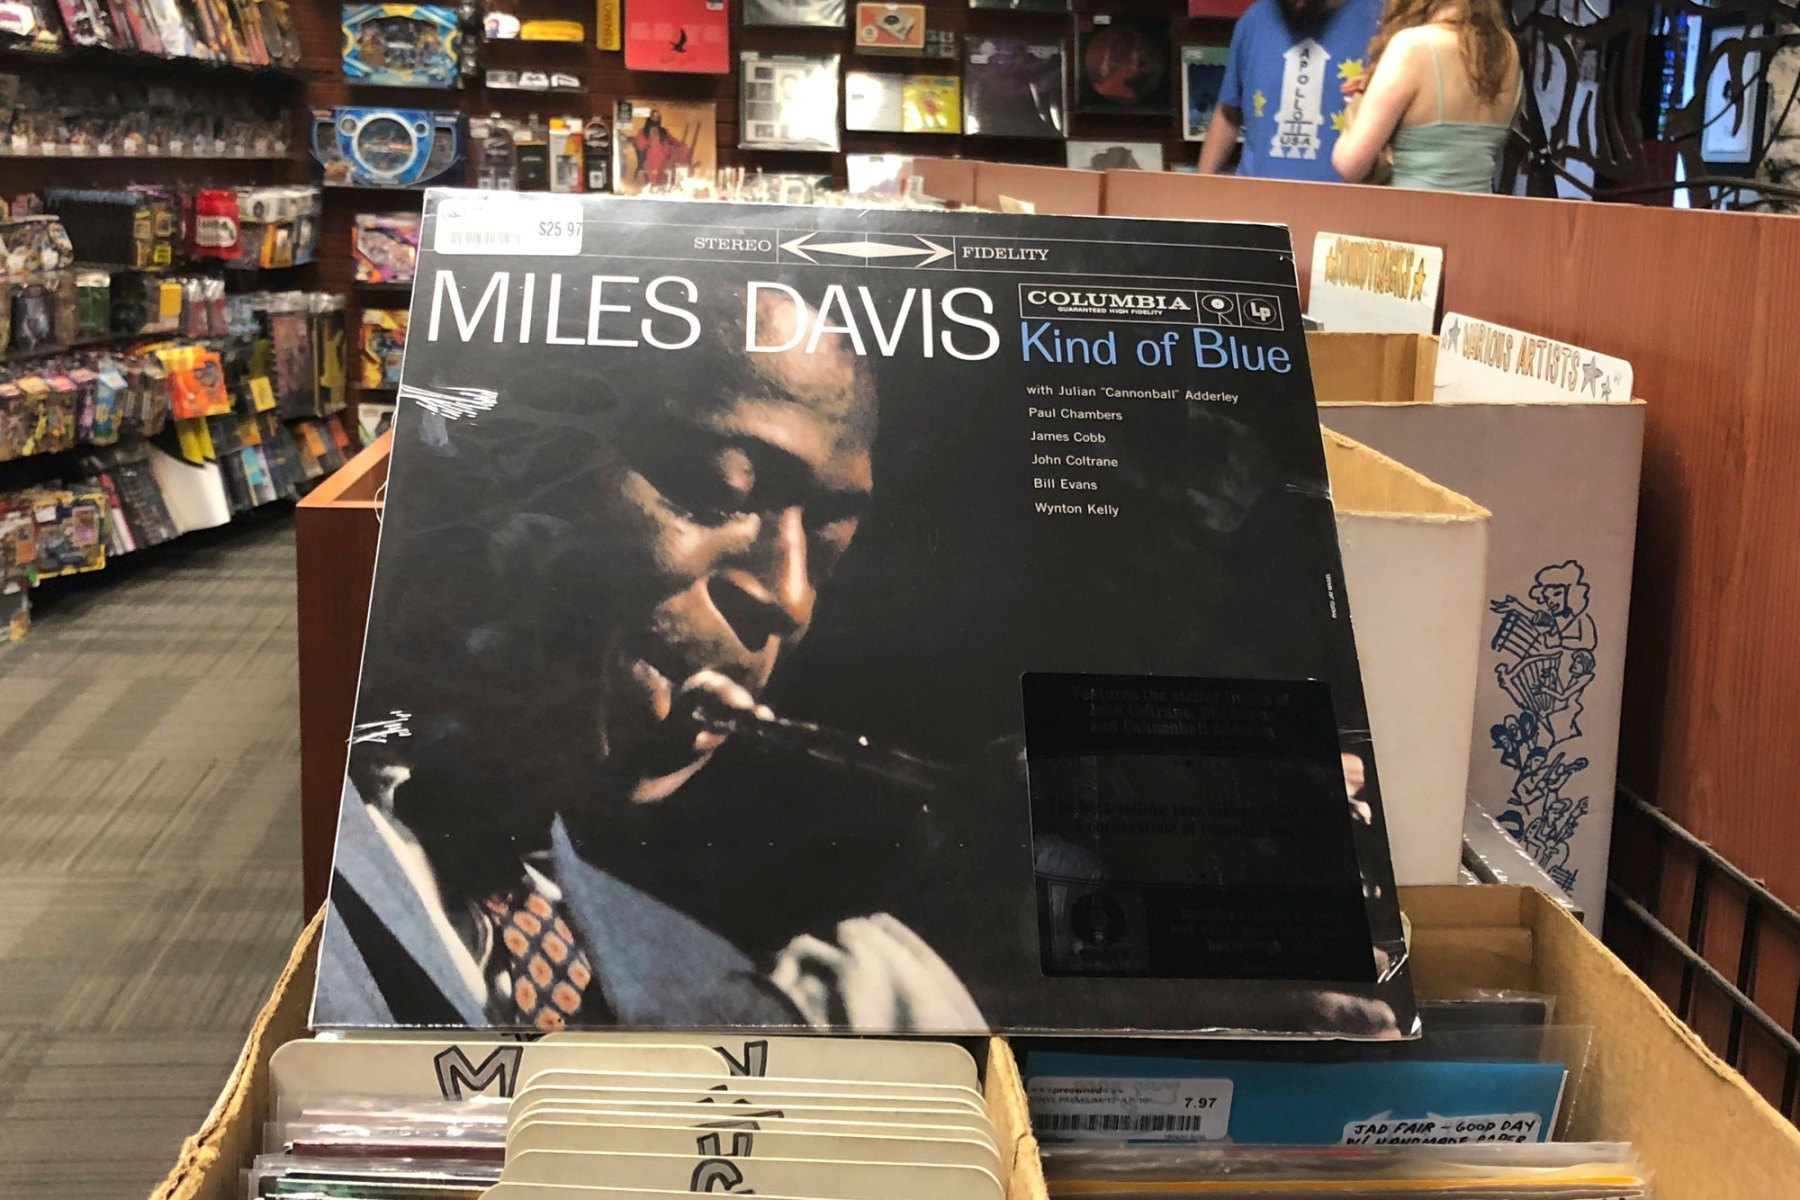 """The """"Kind of Blue"""" album cover is on display at Bull Moose record store in Portland, Maine, on the 60th anniversary of the album's release. Drummer Jimmy Cobb, the only surviving musician who performed on Miles Davis' jazz masterpiece """"Kind of Blue,"""" is still keeping time as the iconic recording marks its 60th anniversaryKind of Blue Drummer, Portland, USA - 17 Aug 2019"""